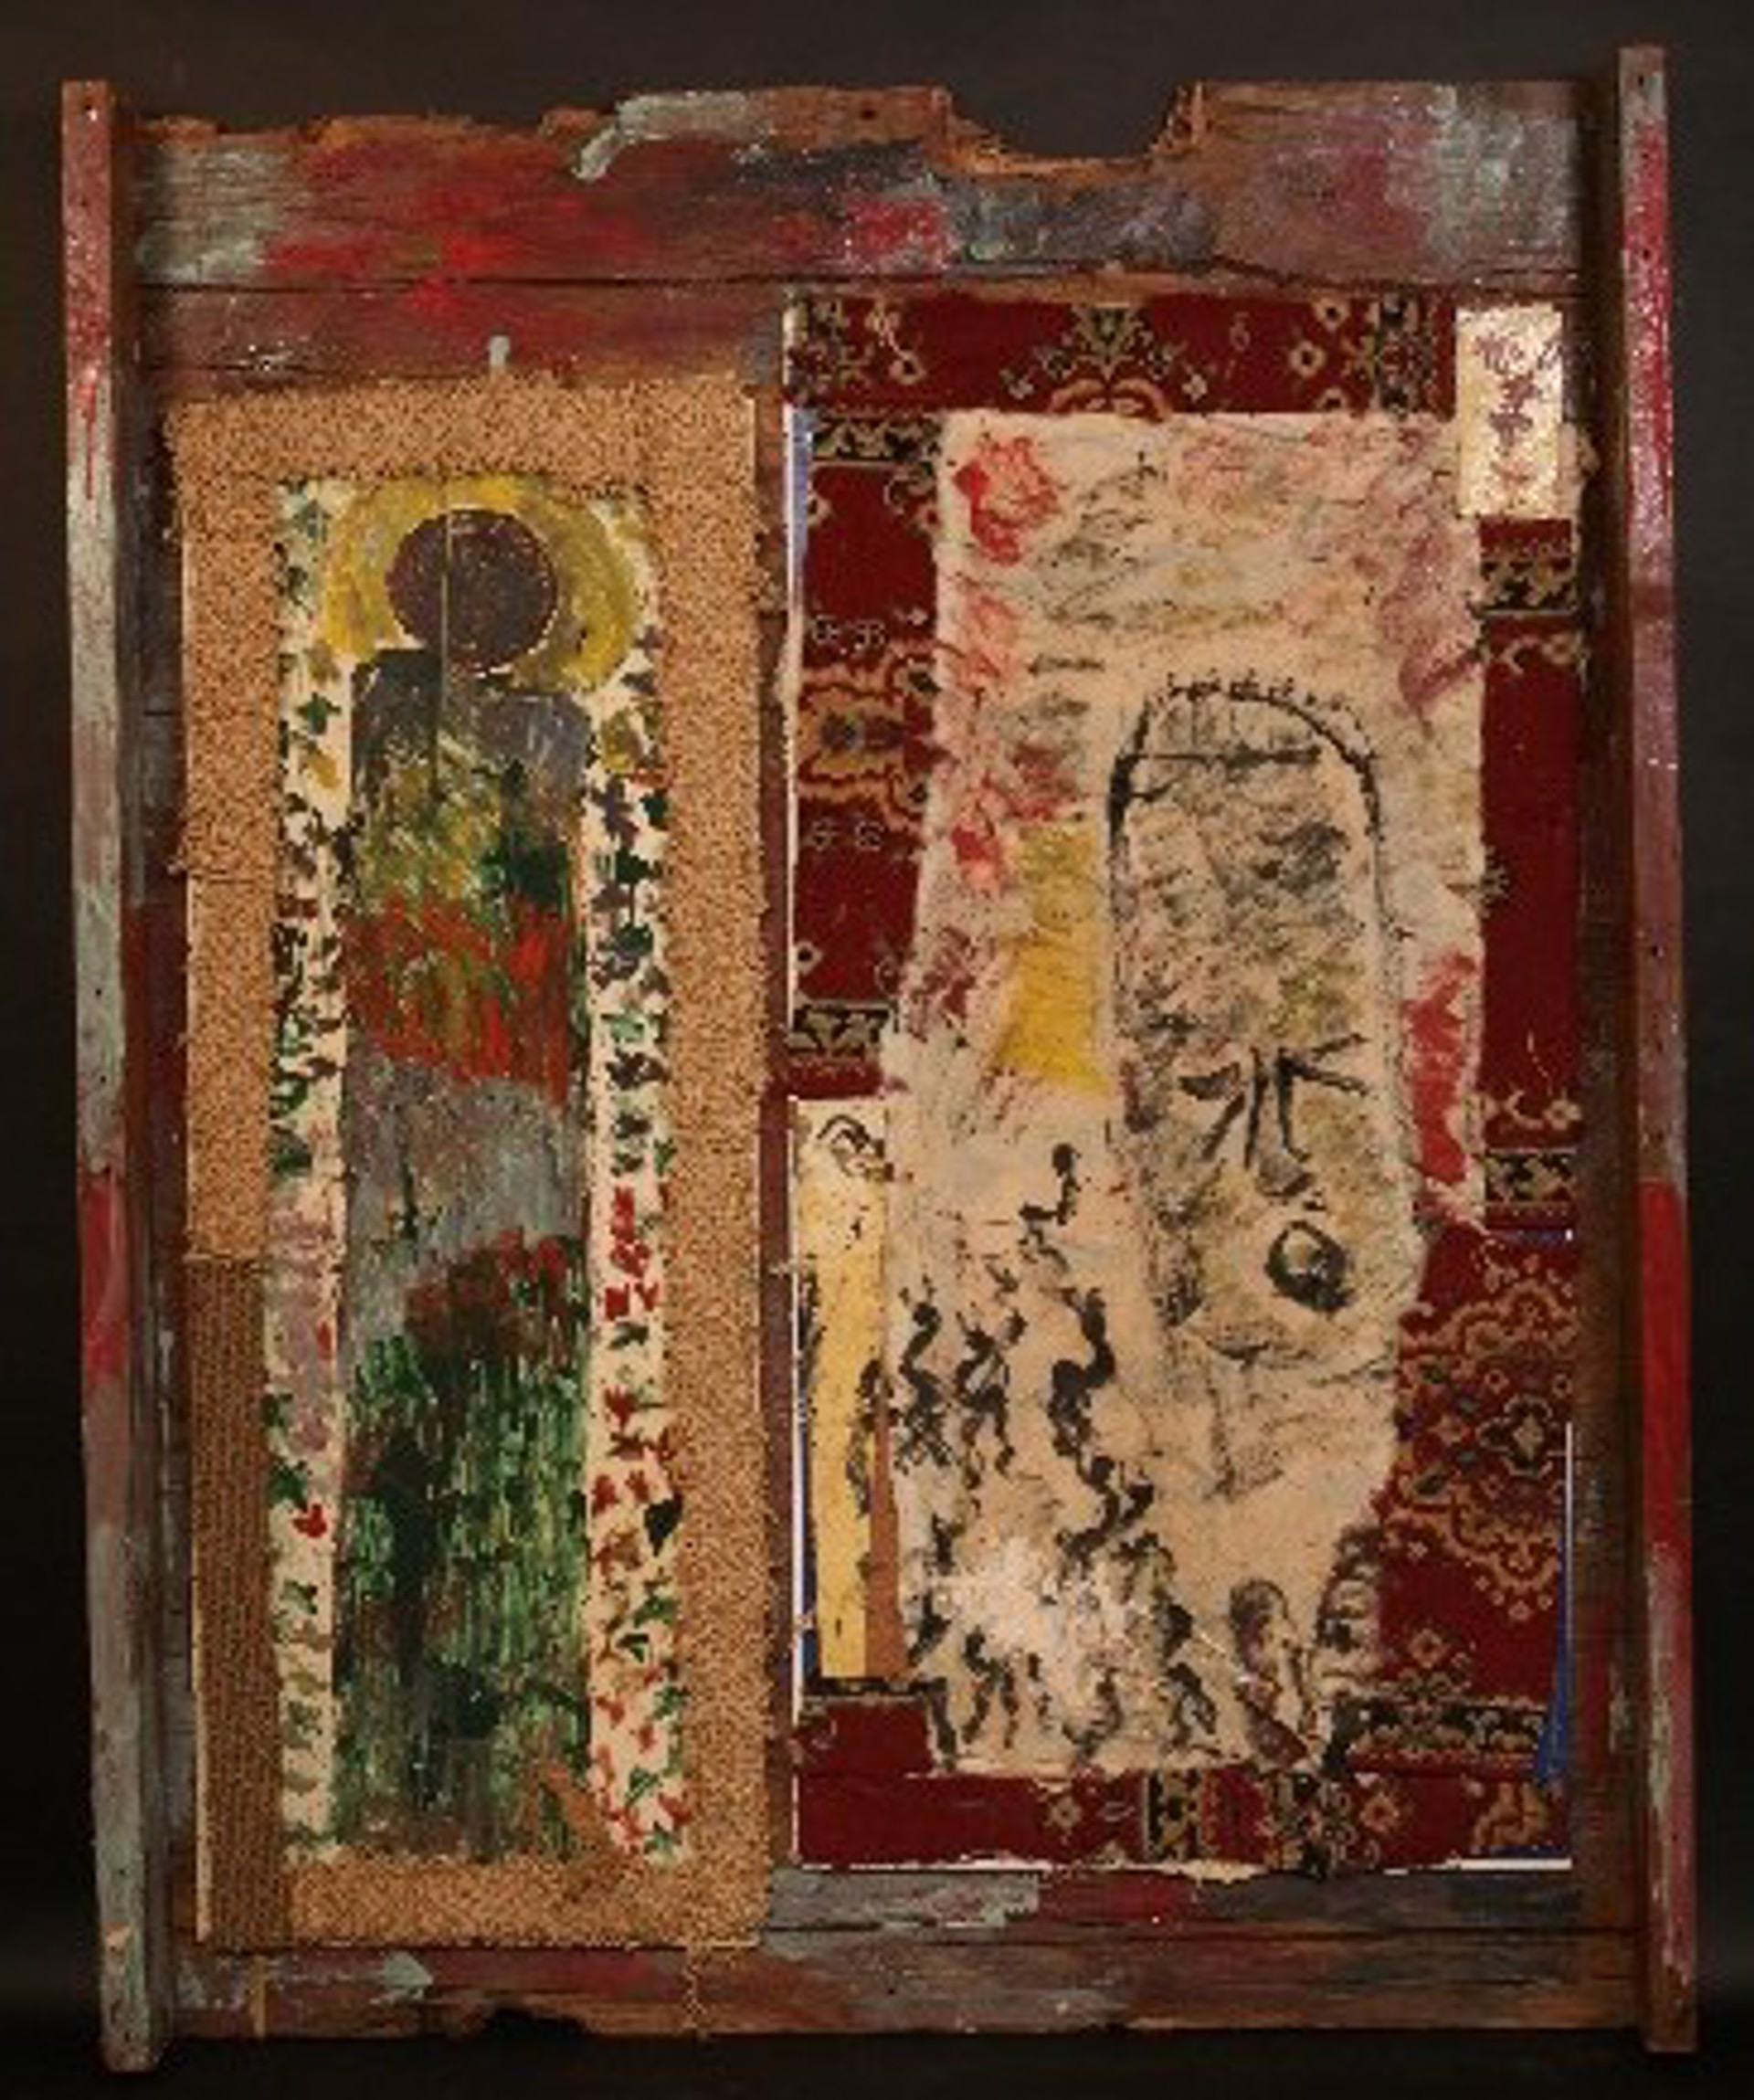 NOT FOR SALE - Saint & Angel by Purvis Young (1943 - 2010)